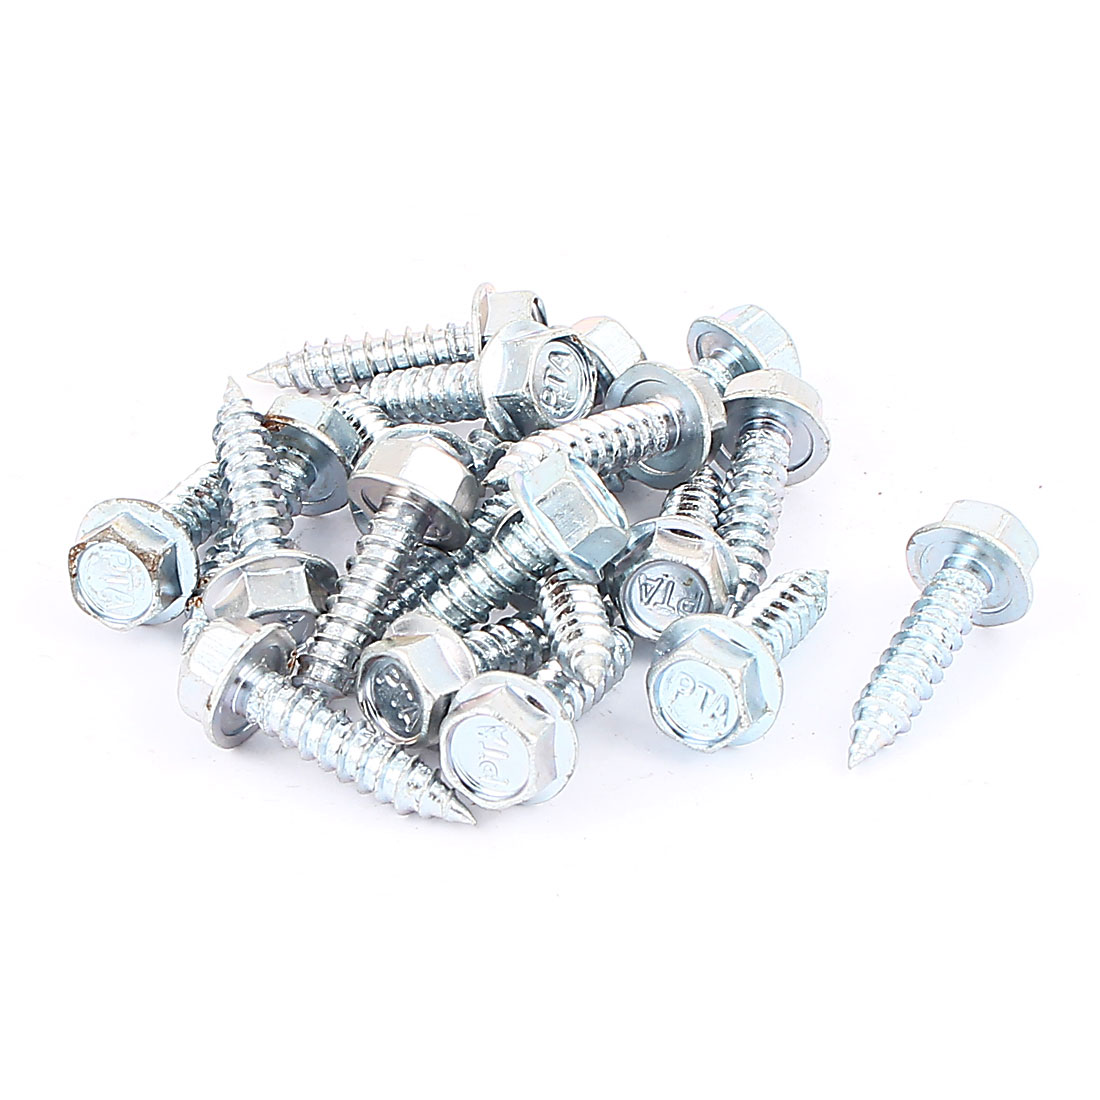 20pcs M6 x 25mm Threaded Silver Tone Metal Hex Head Self Tapping Drilling Screw Fastener